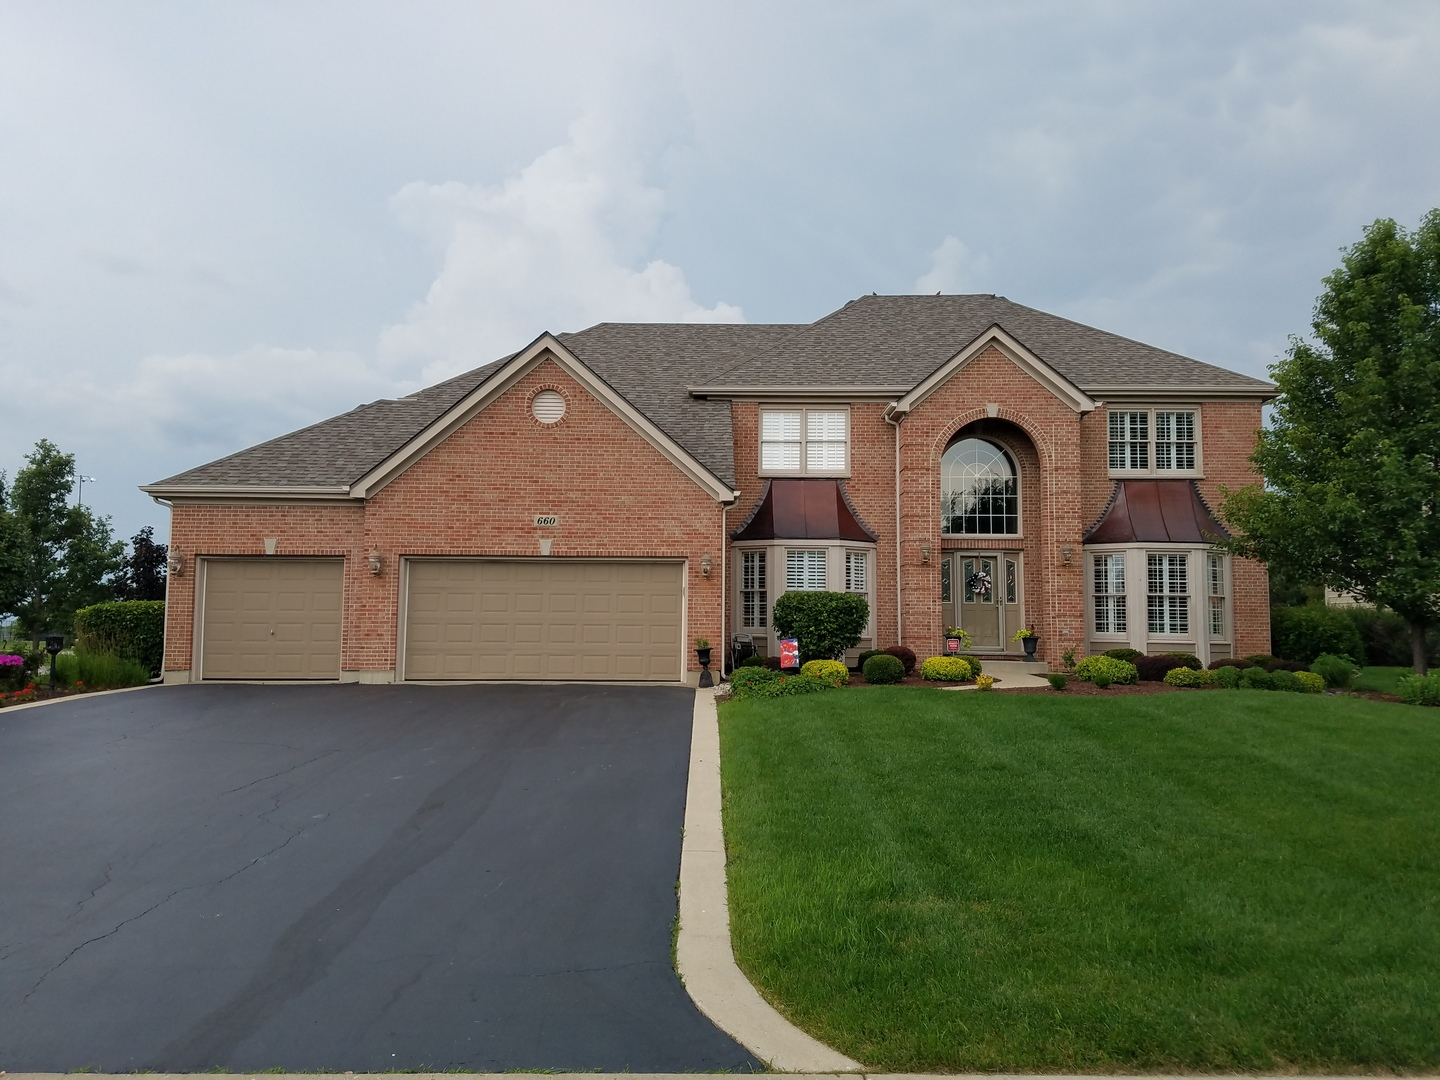 Property for sale at 660 Clover Drive, Algonquin,  IL 60102